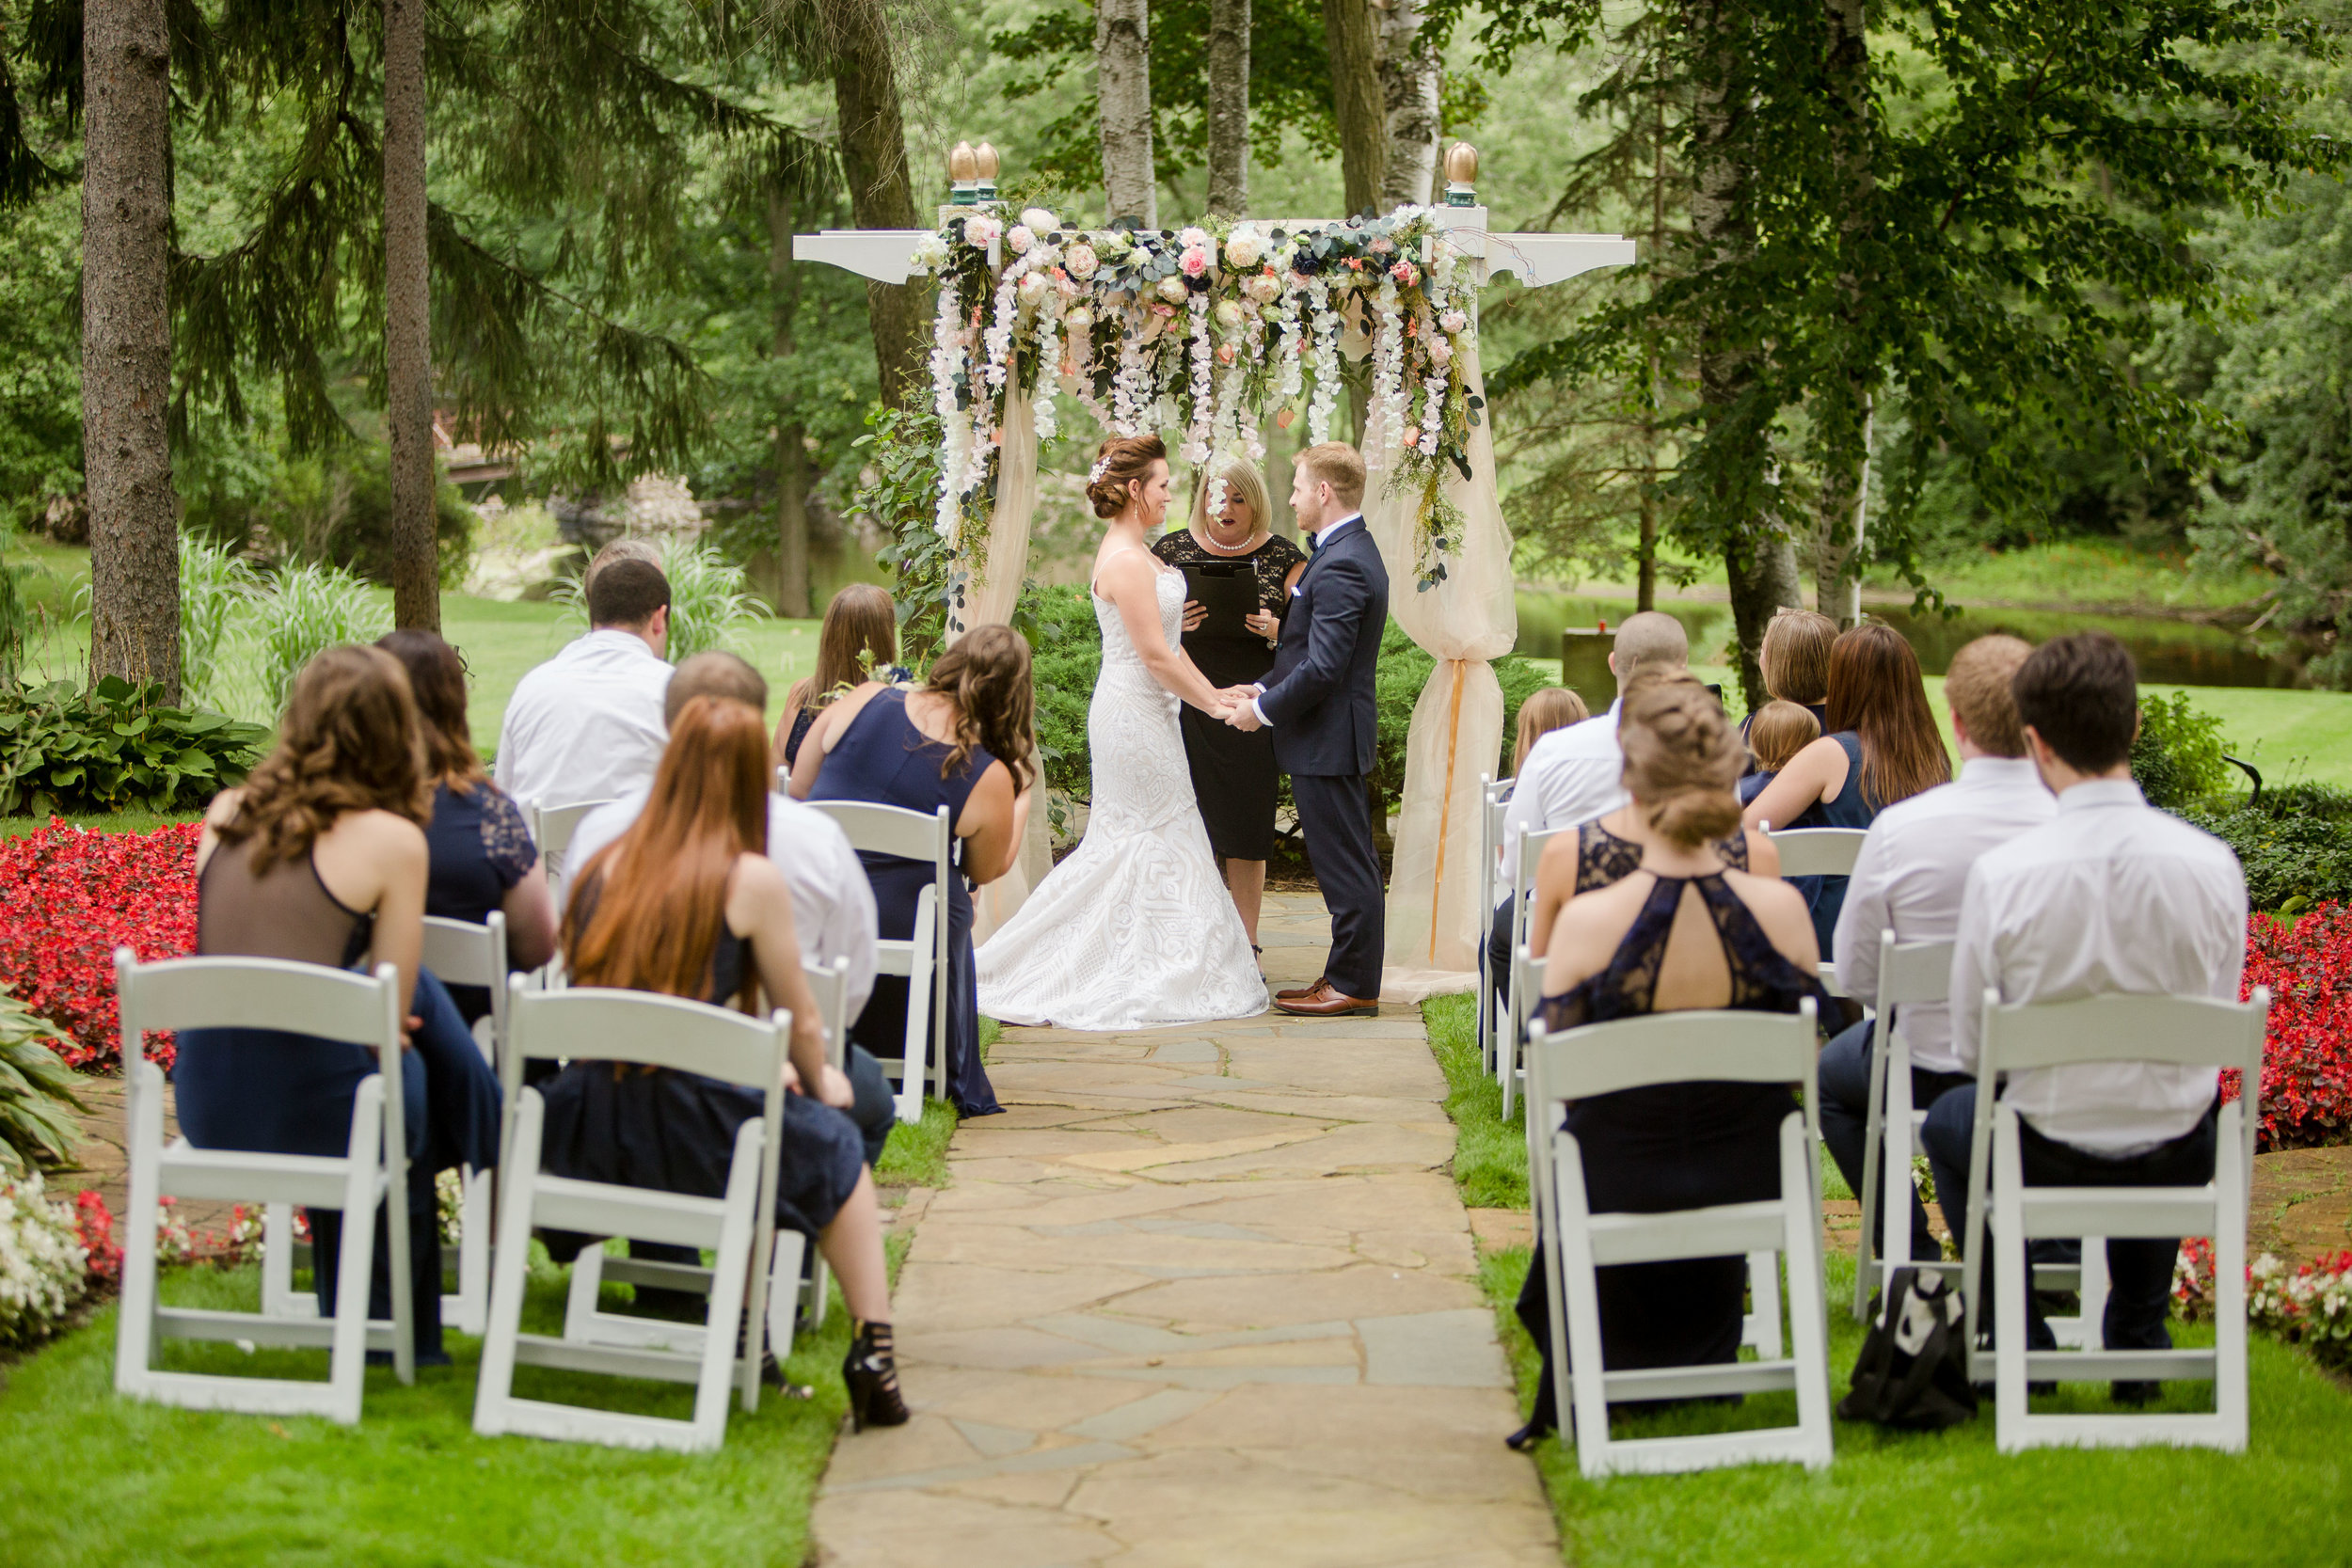 The 'i do's' captured by photographer  Heather Kanillopoolos